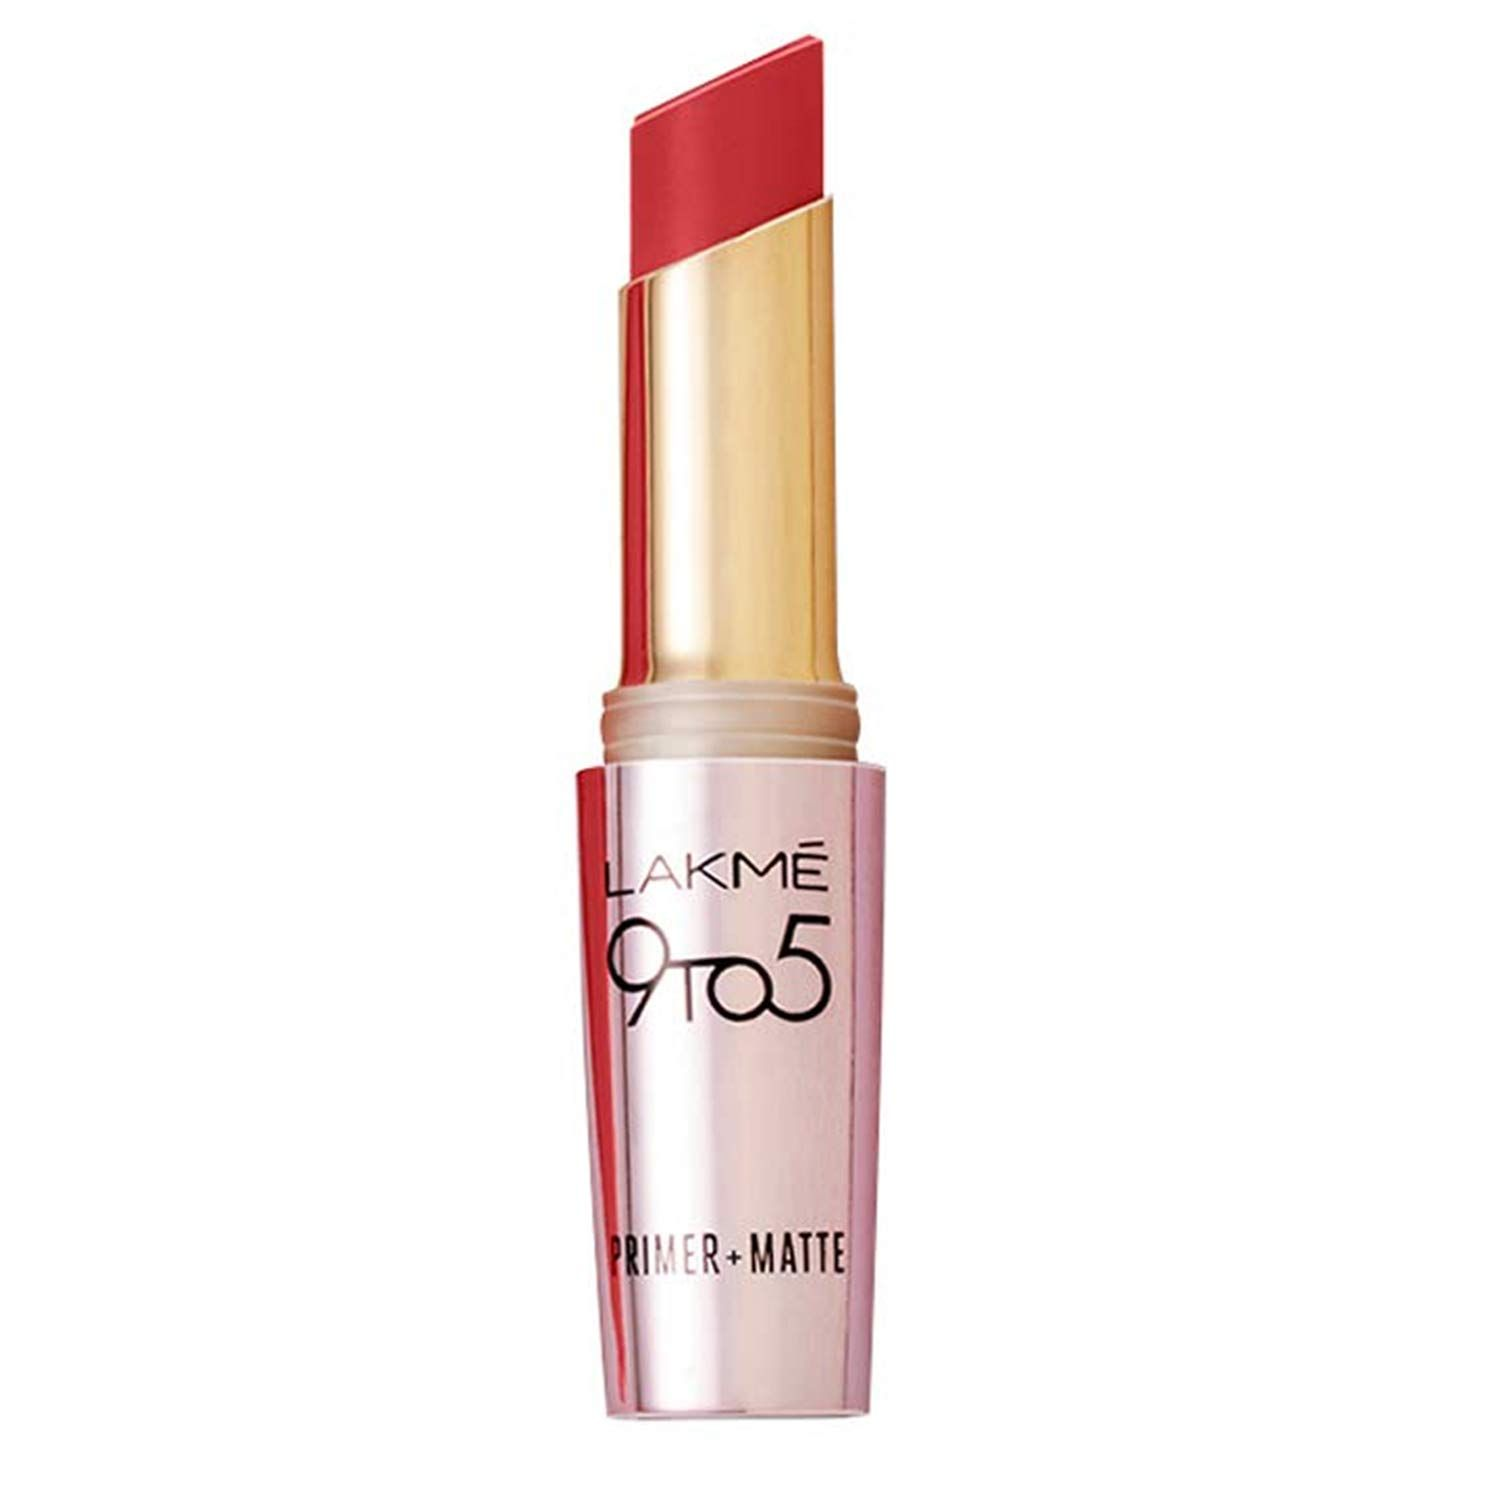 Lakme 9 To 5 Primer + Matte Lipstick - MP9 Nude Touch: Buy